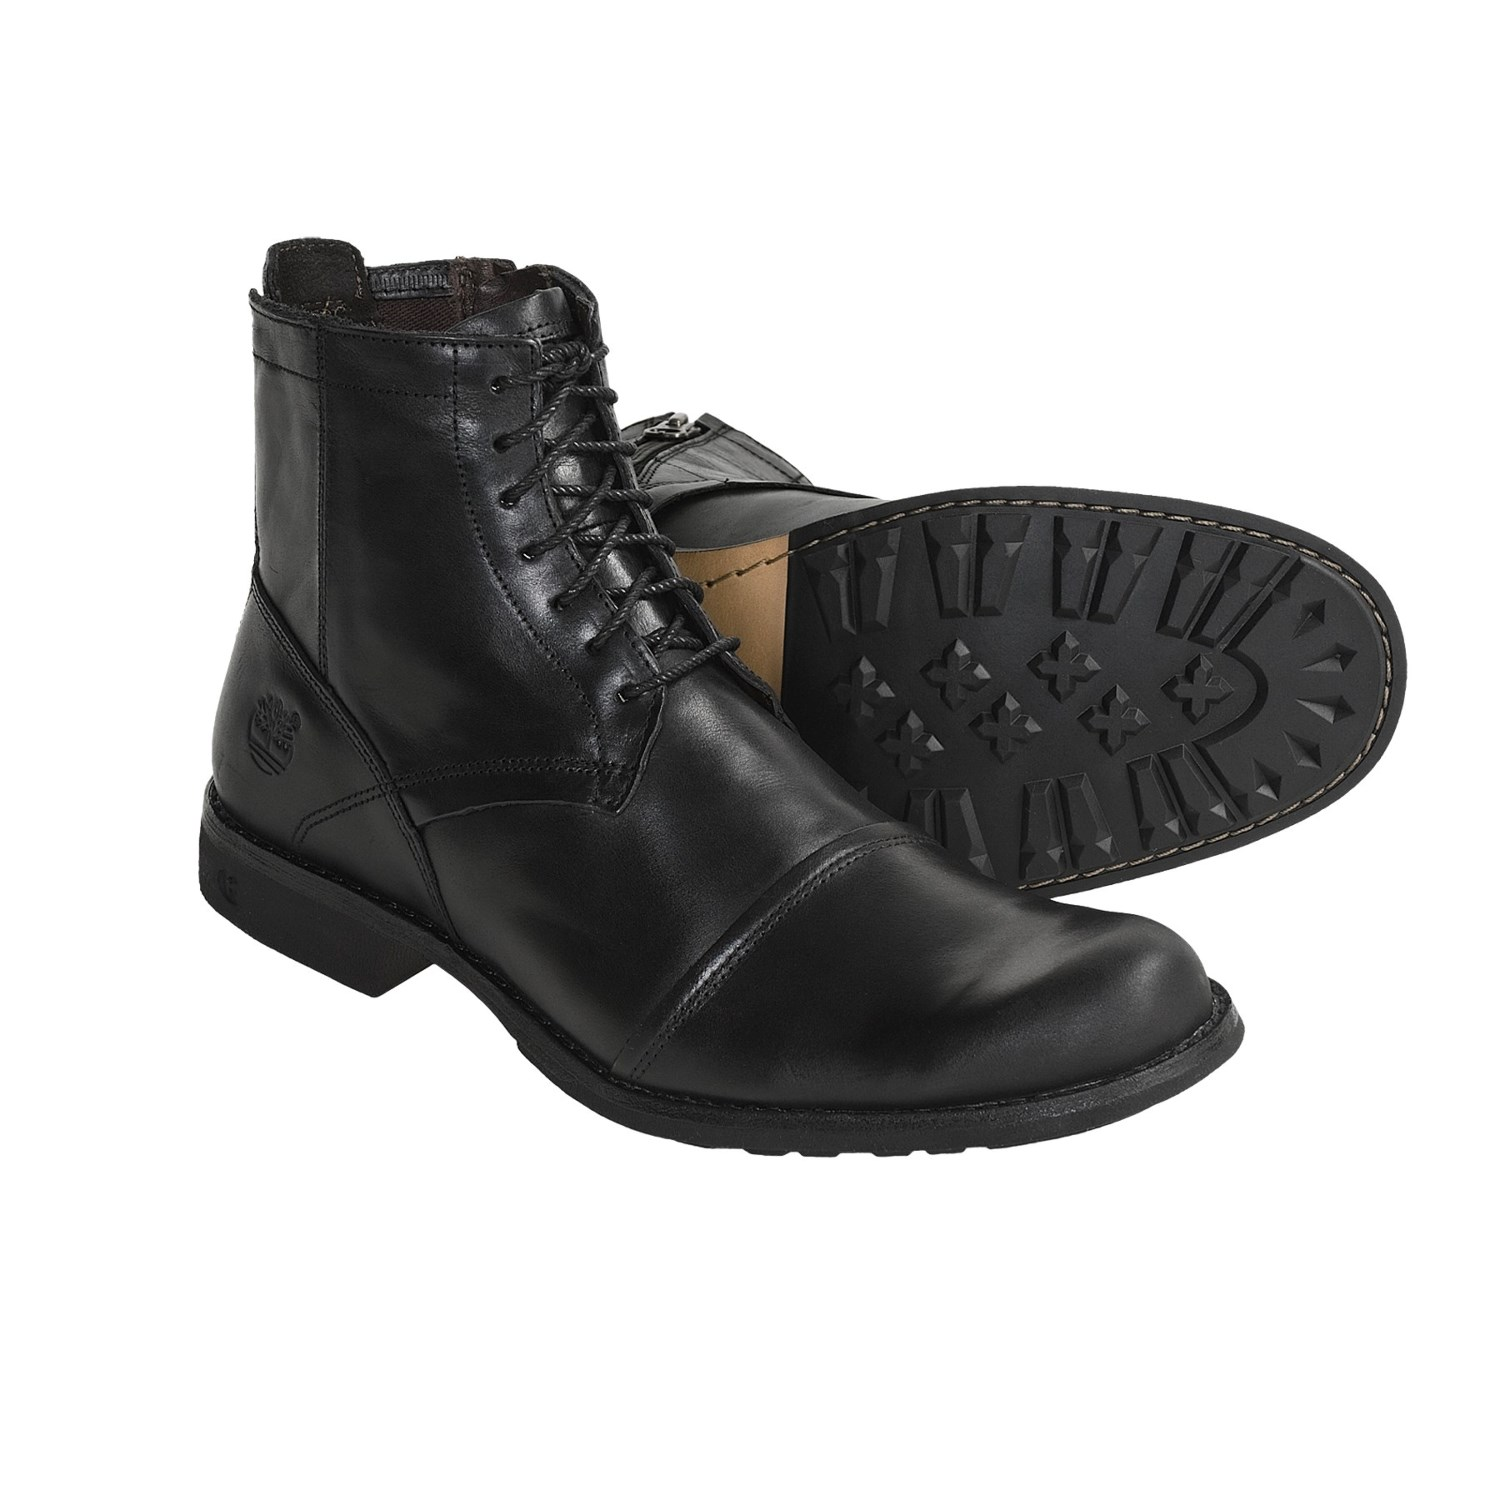 Black Leather Boots For Men dfRbBhnX